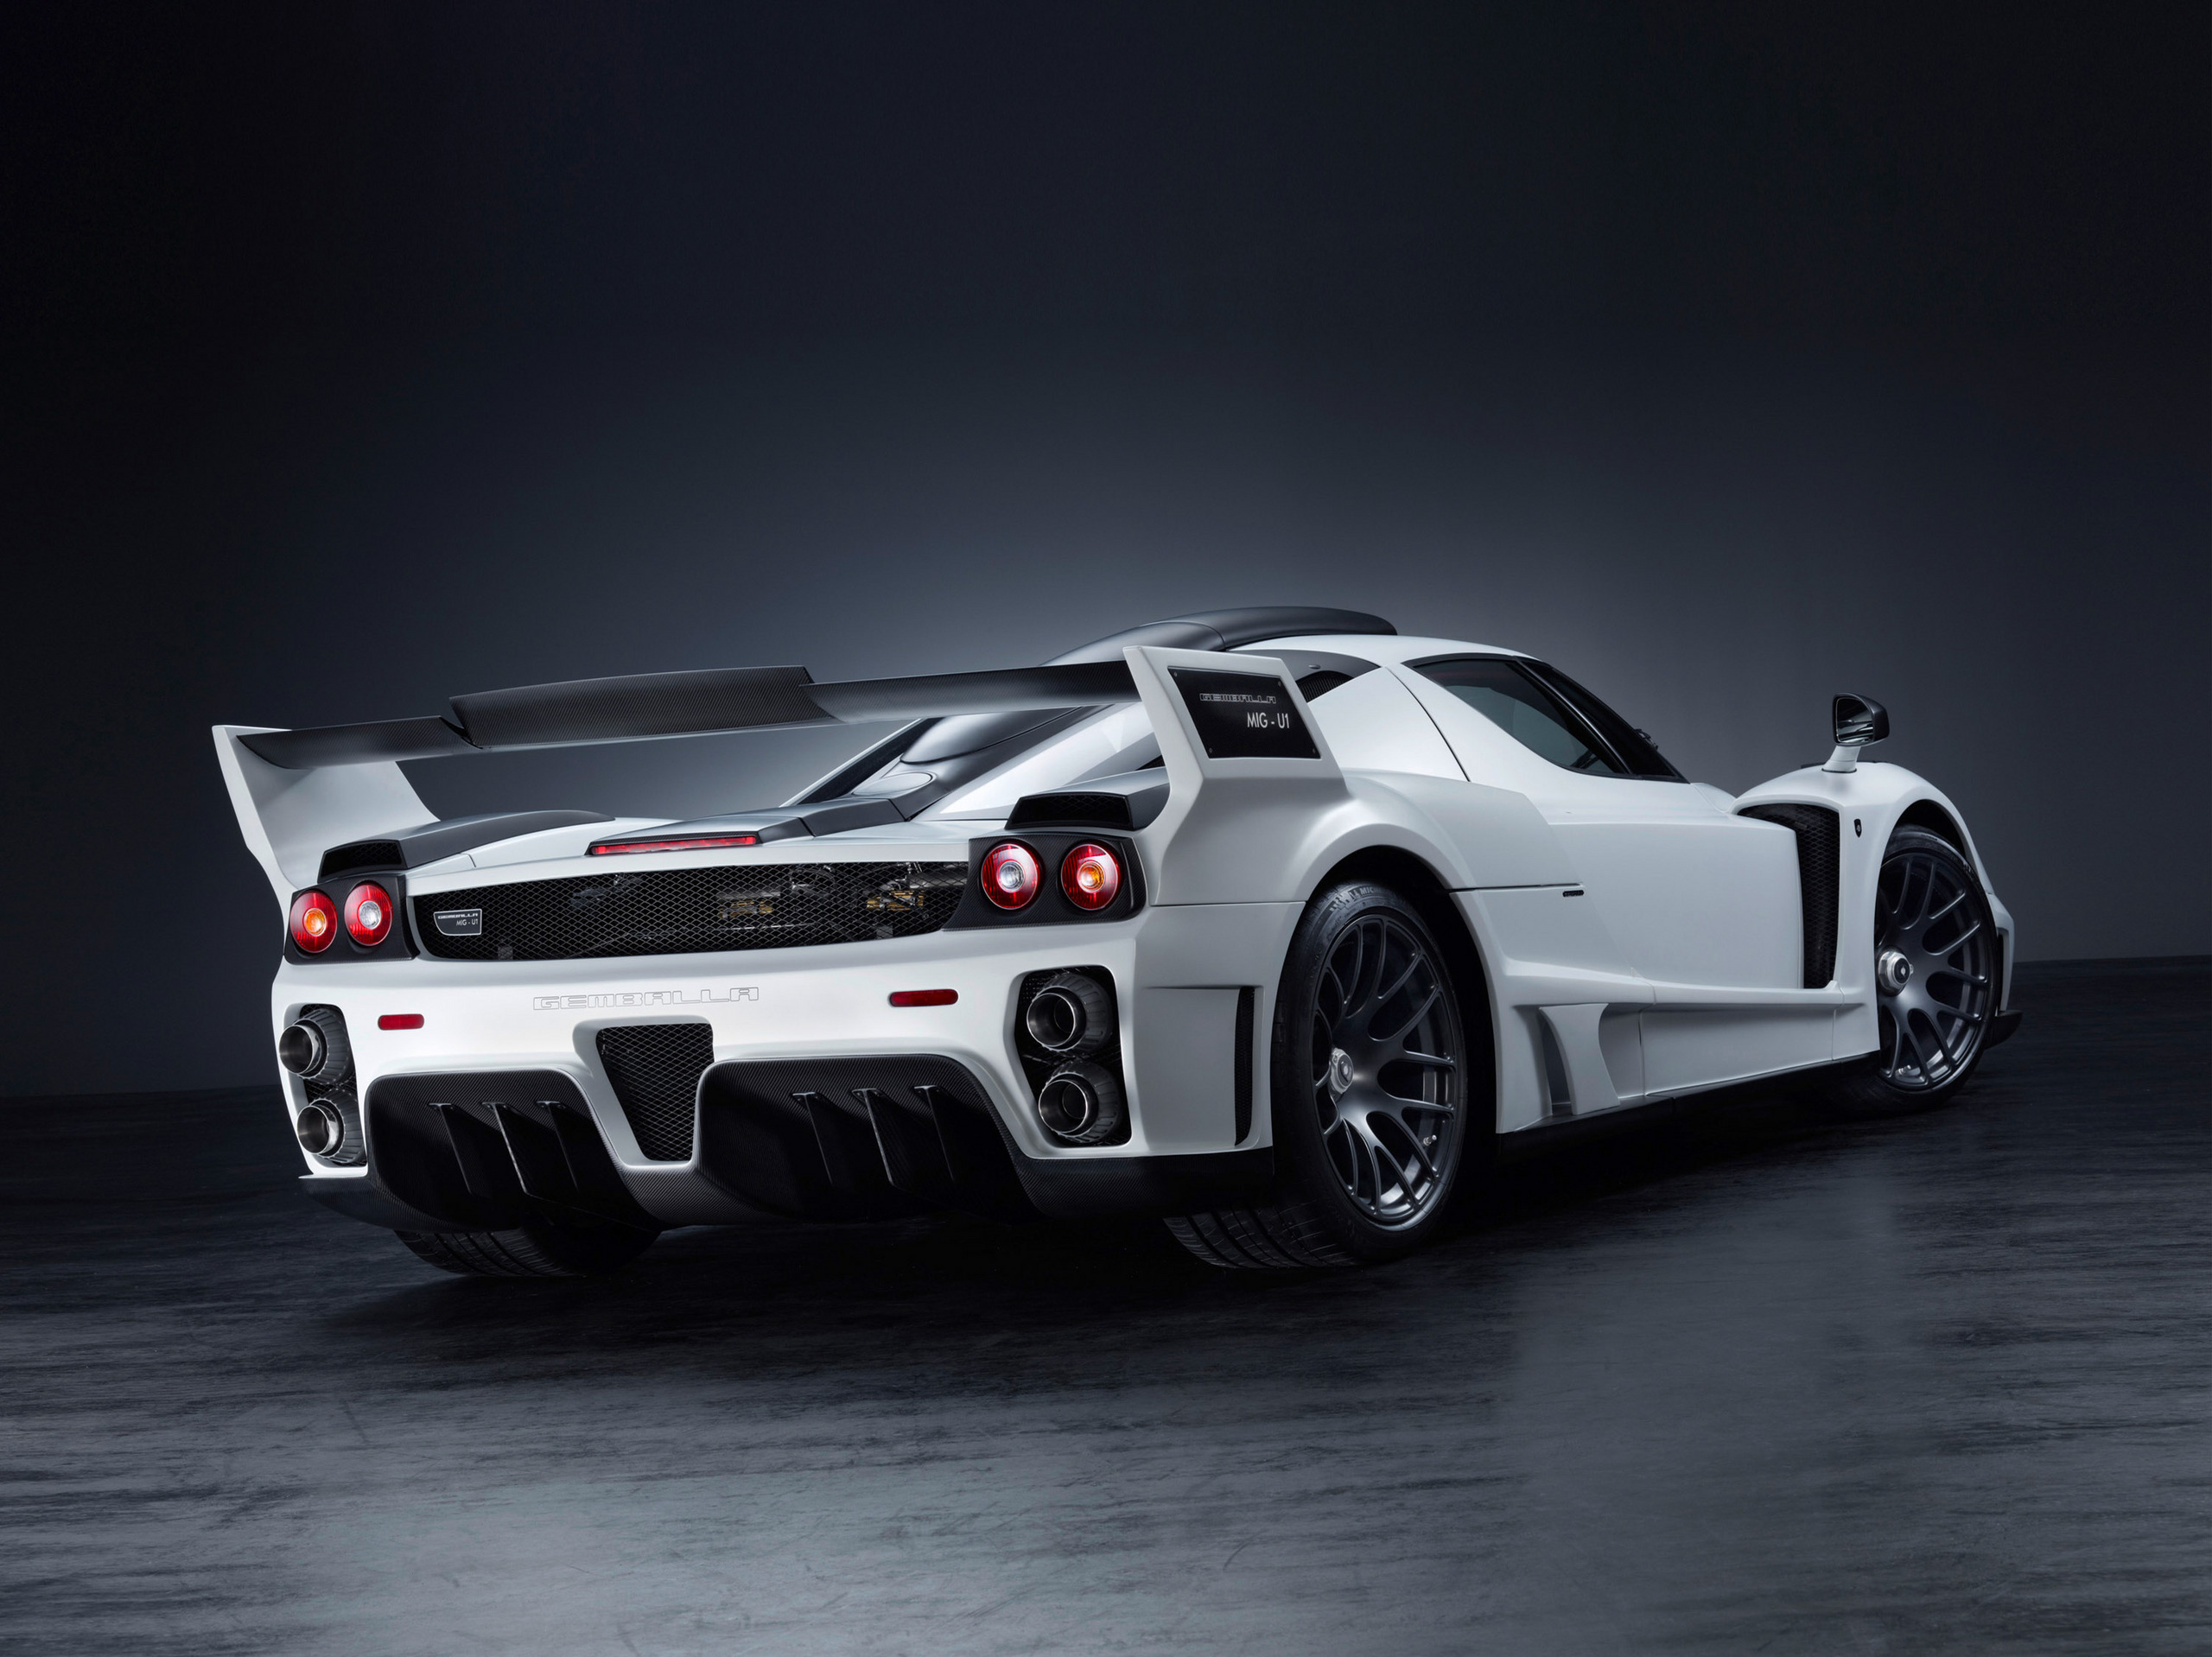 Exotic Cars Images Gemballa Mig U1 Hd Wallpaper And Background Photos 25068338